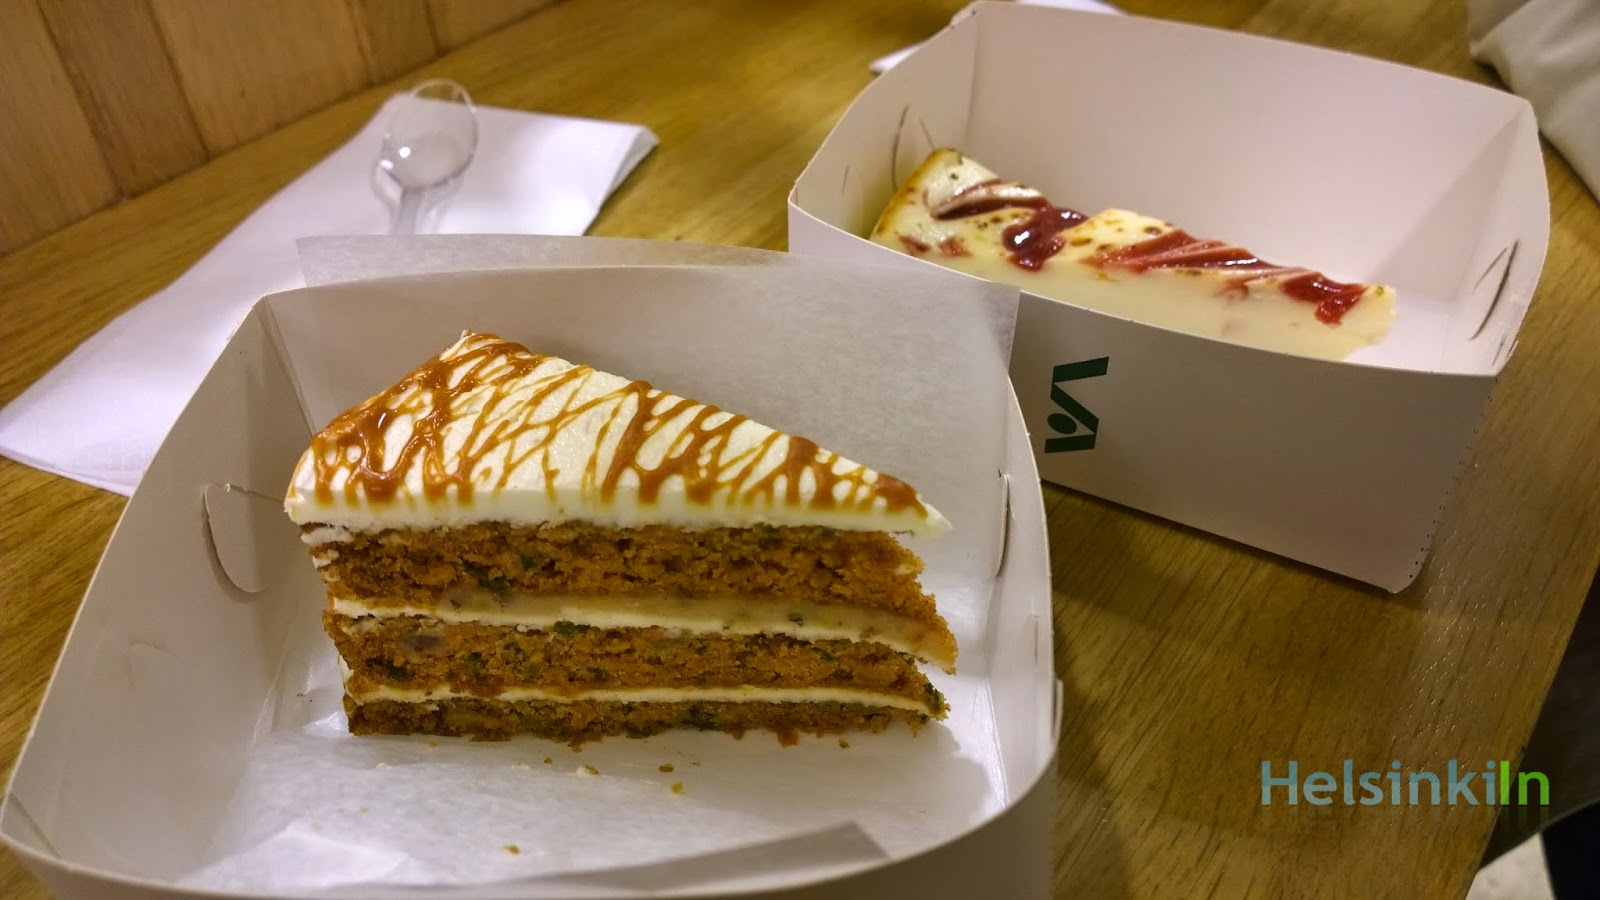 Delicious Cheesecake and Carrot Cake at Stockmann